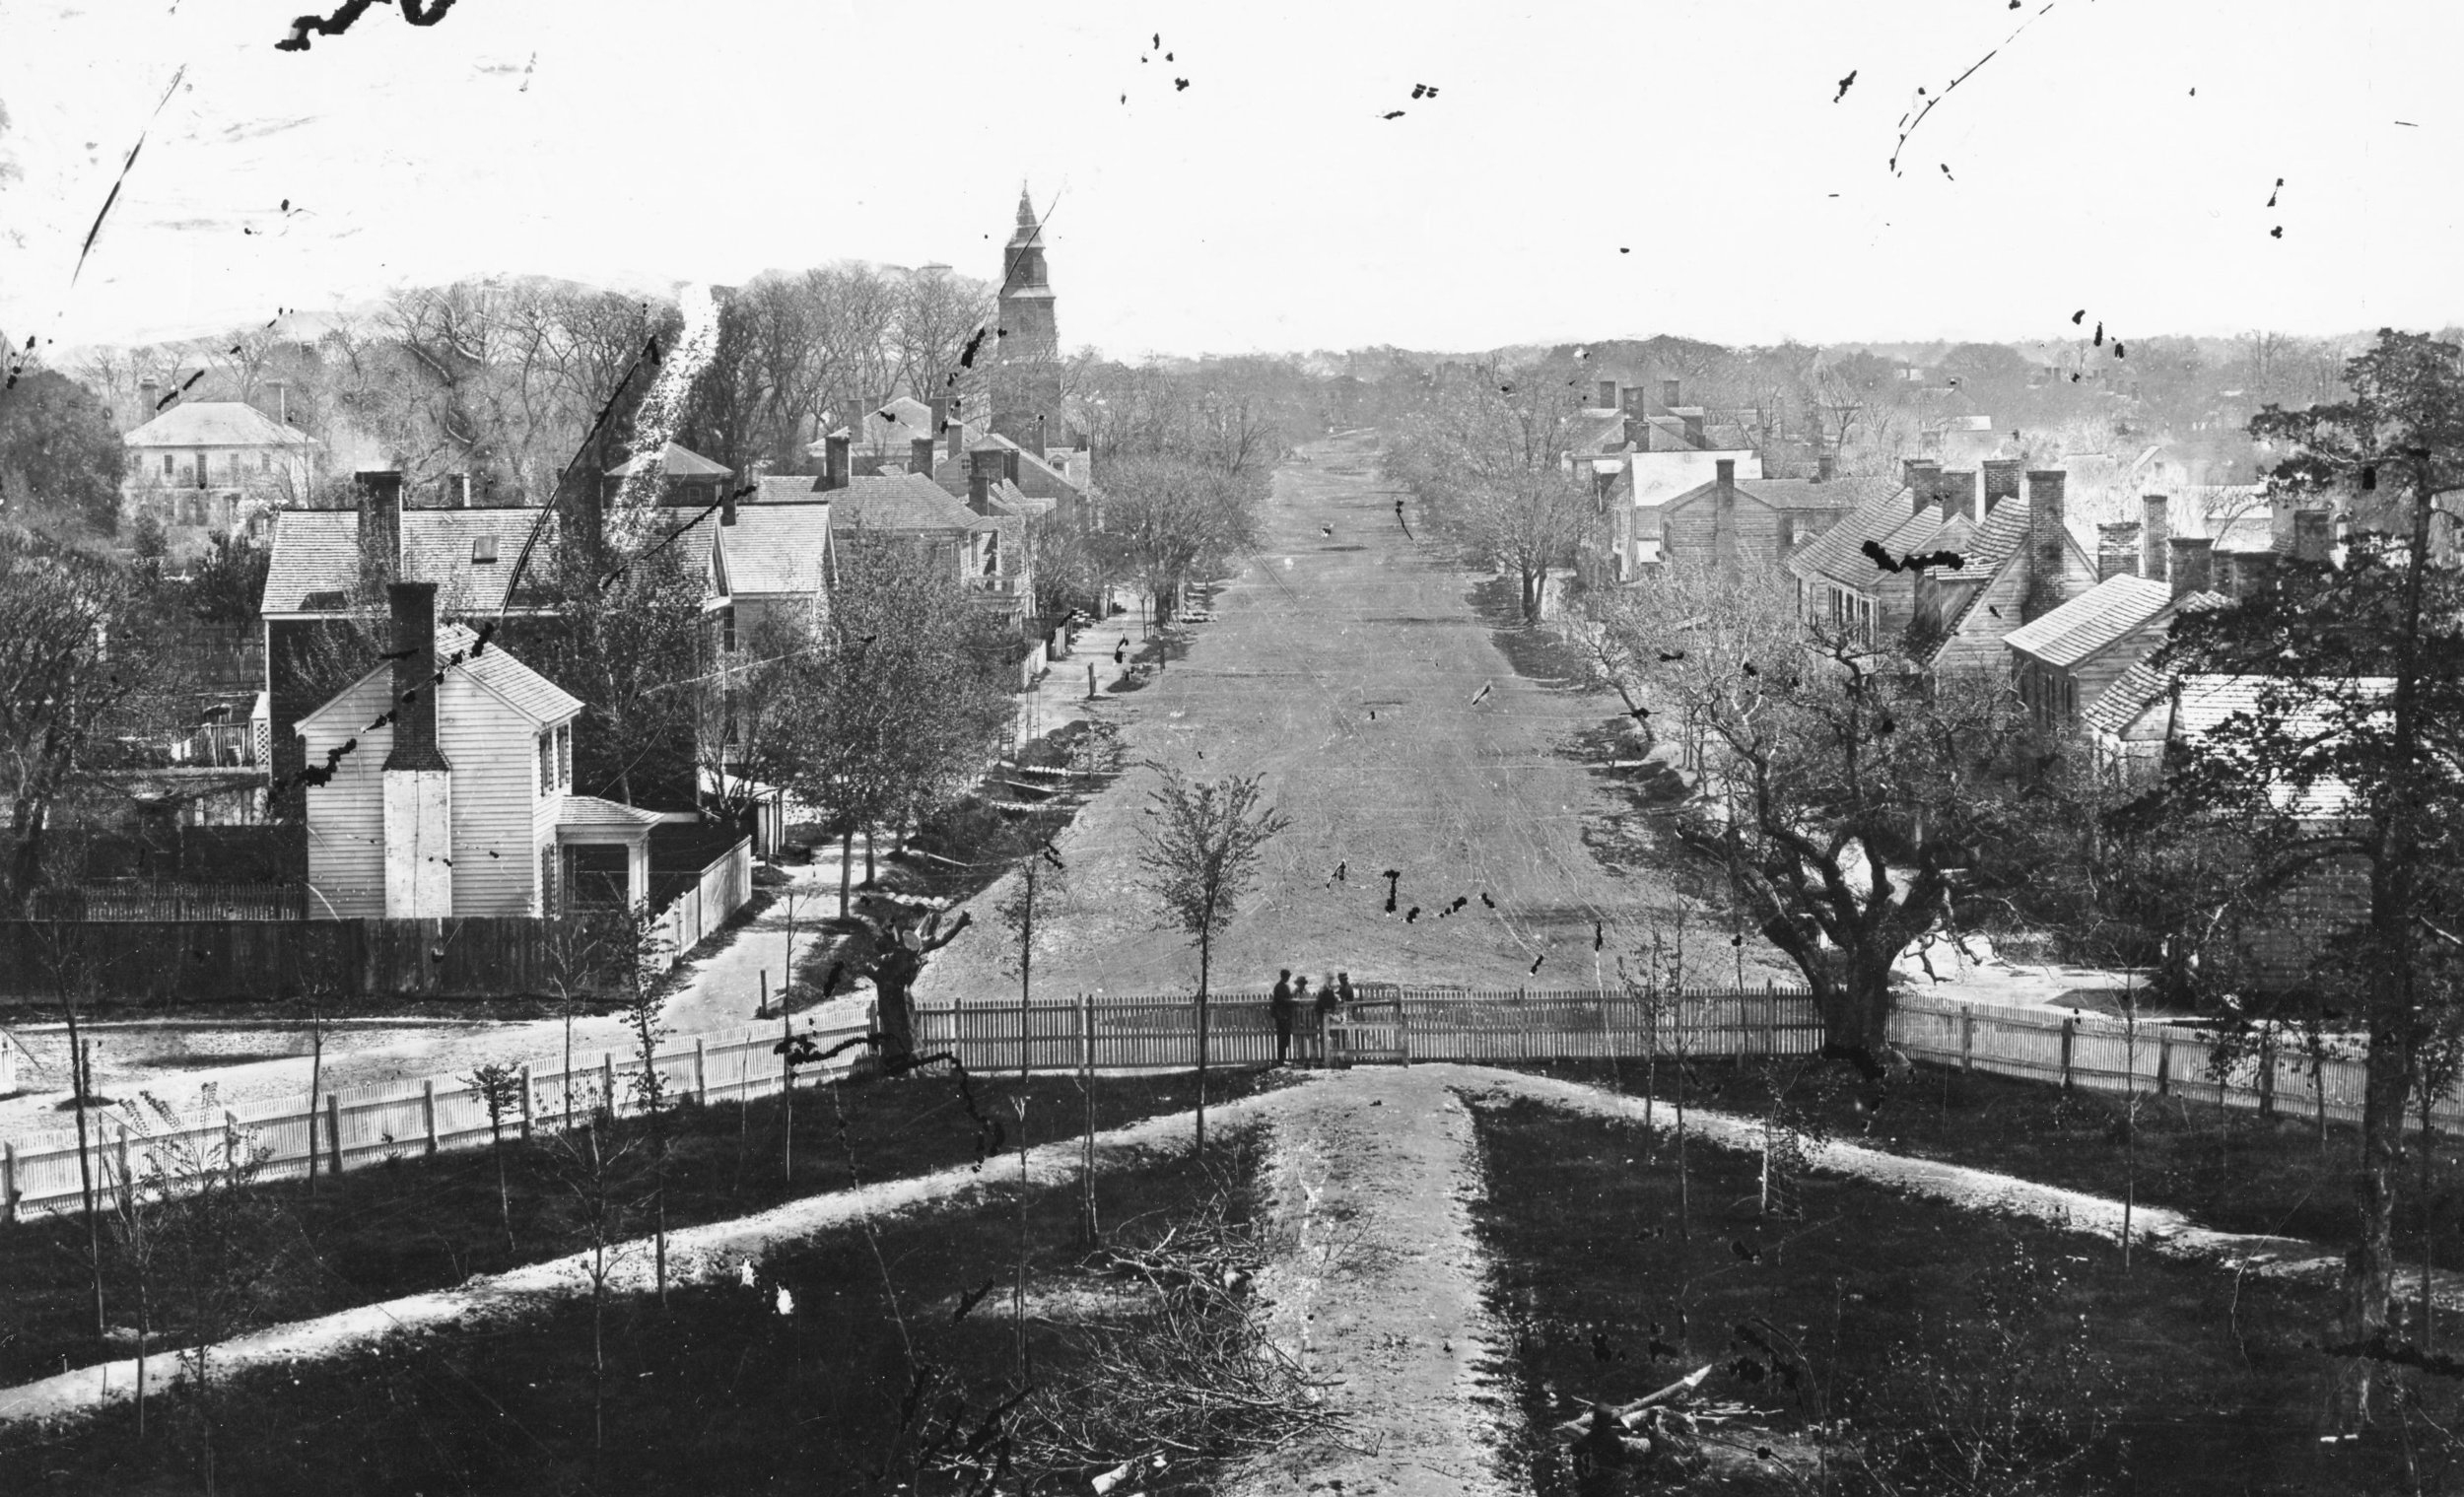 View from the College of William and Mary looking east on Main Street (present Duke of Gloucester Street), ca. 1870